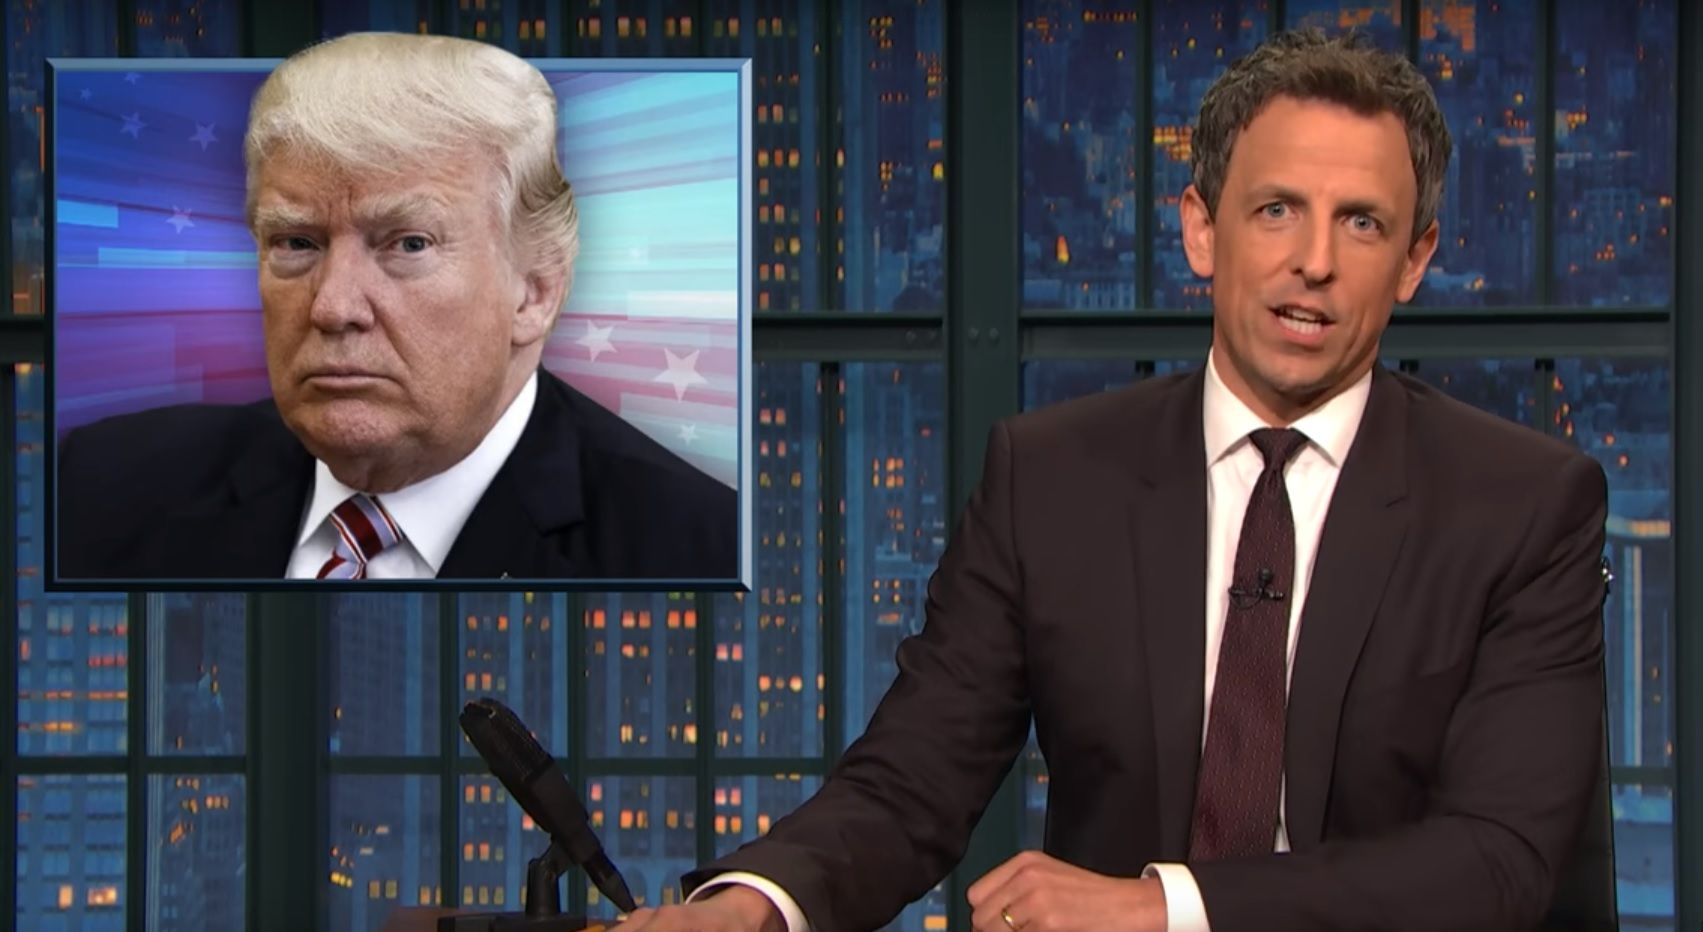 Seth Meyers: Trump warned us about special prosecutor